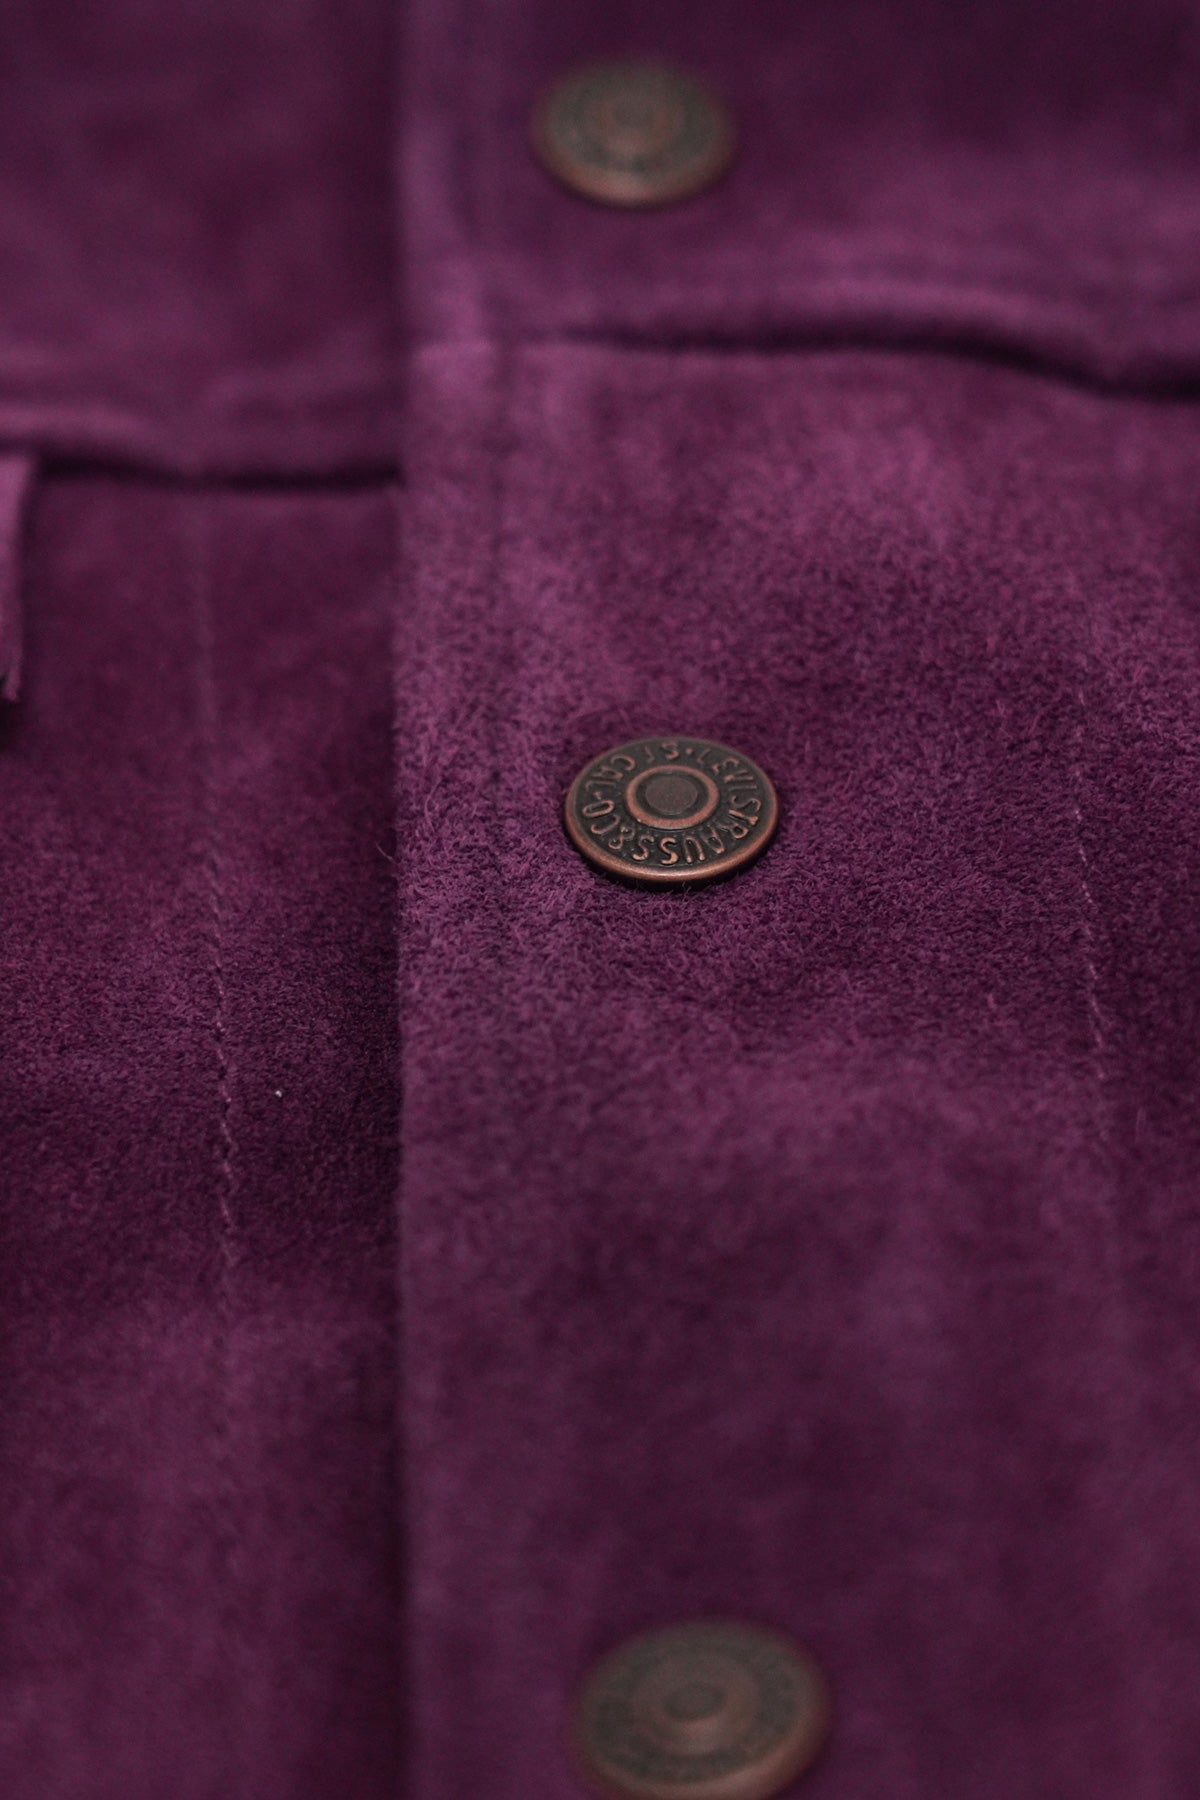 Levi's Vintage Clothing - 1960's Suede Trucker - Purple Passion - Canoe Club